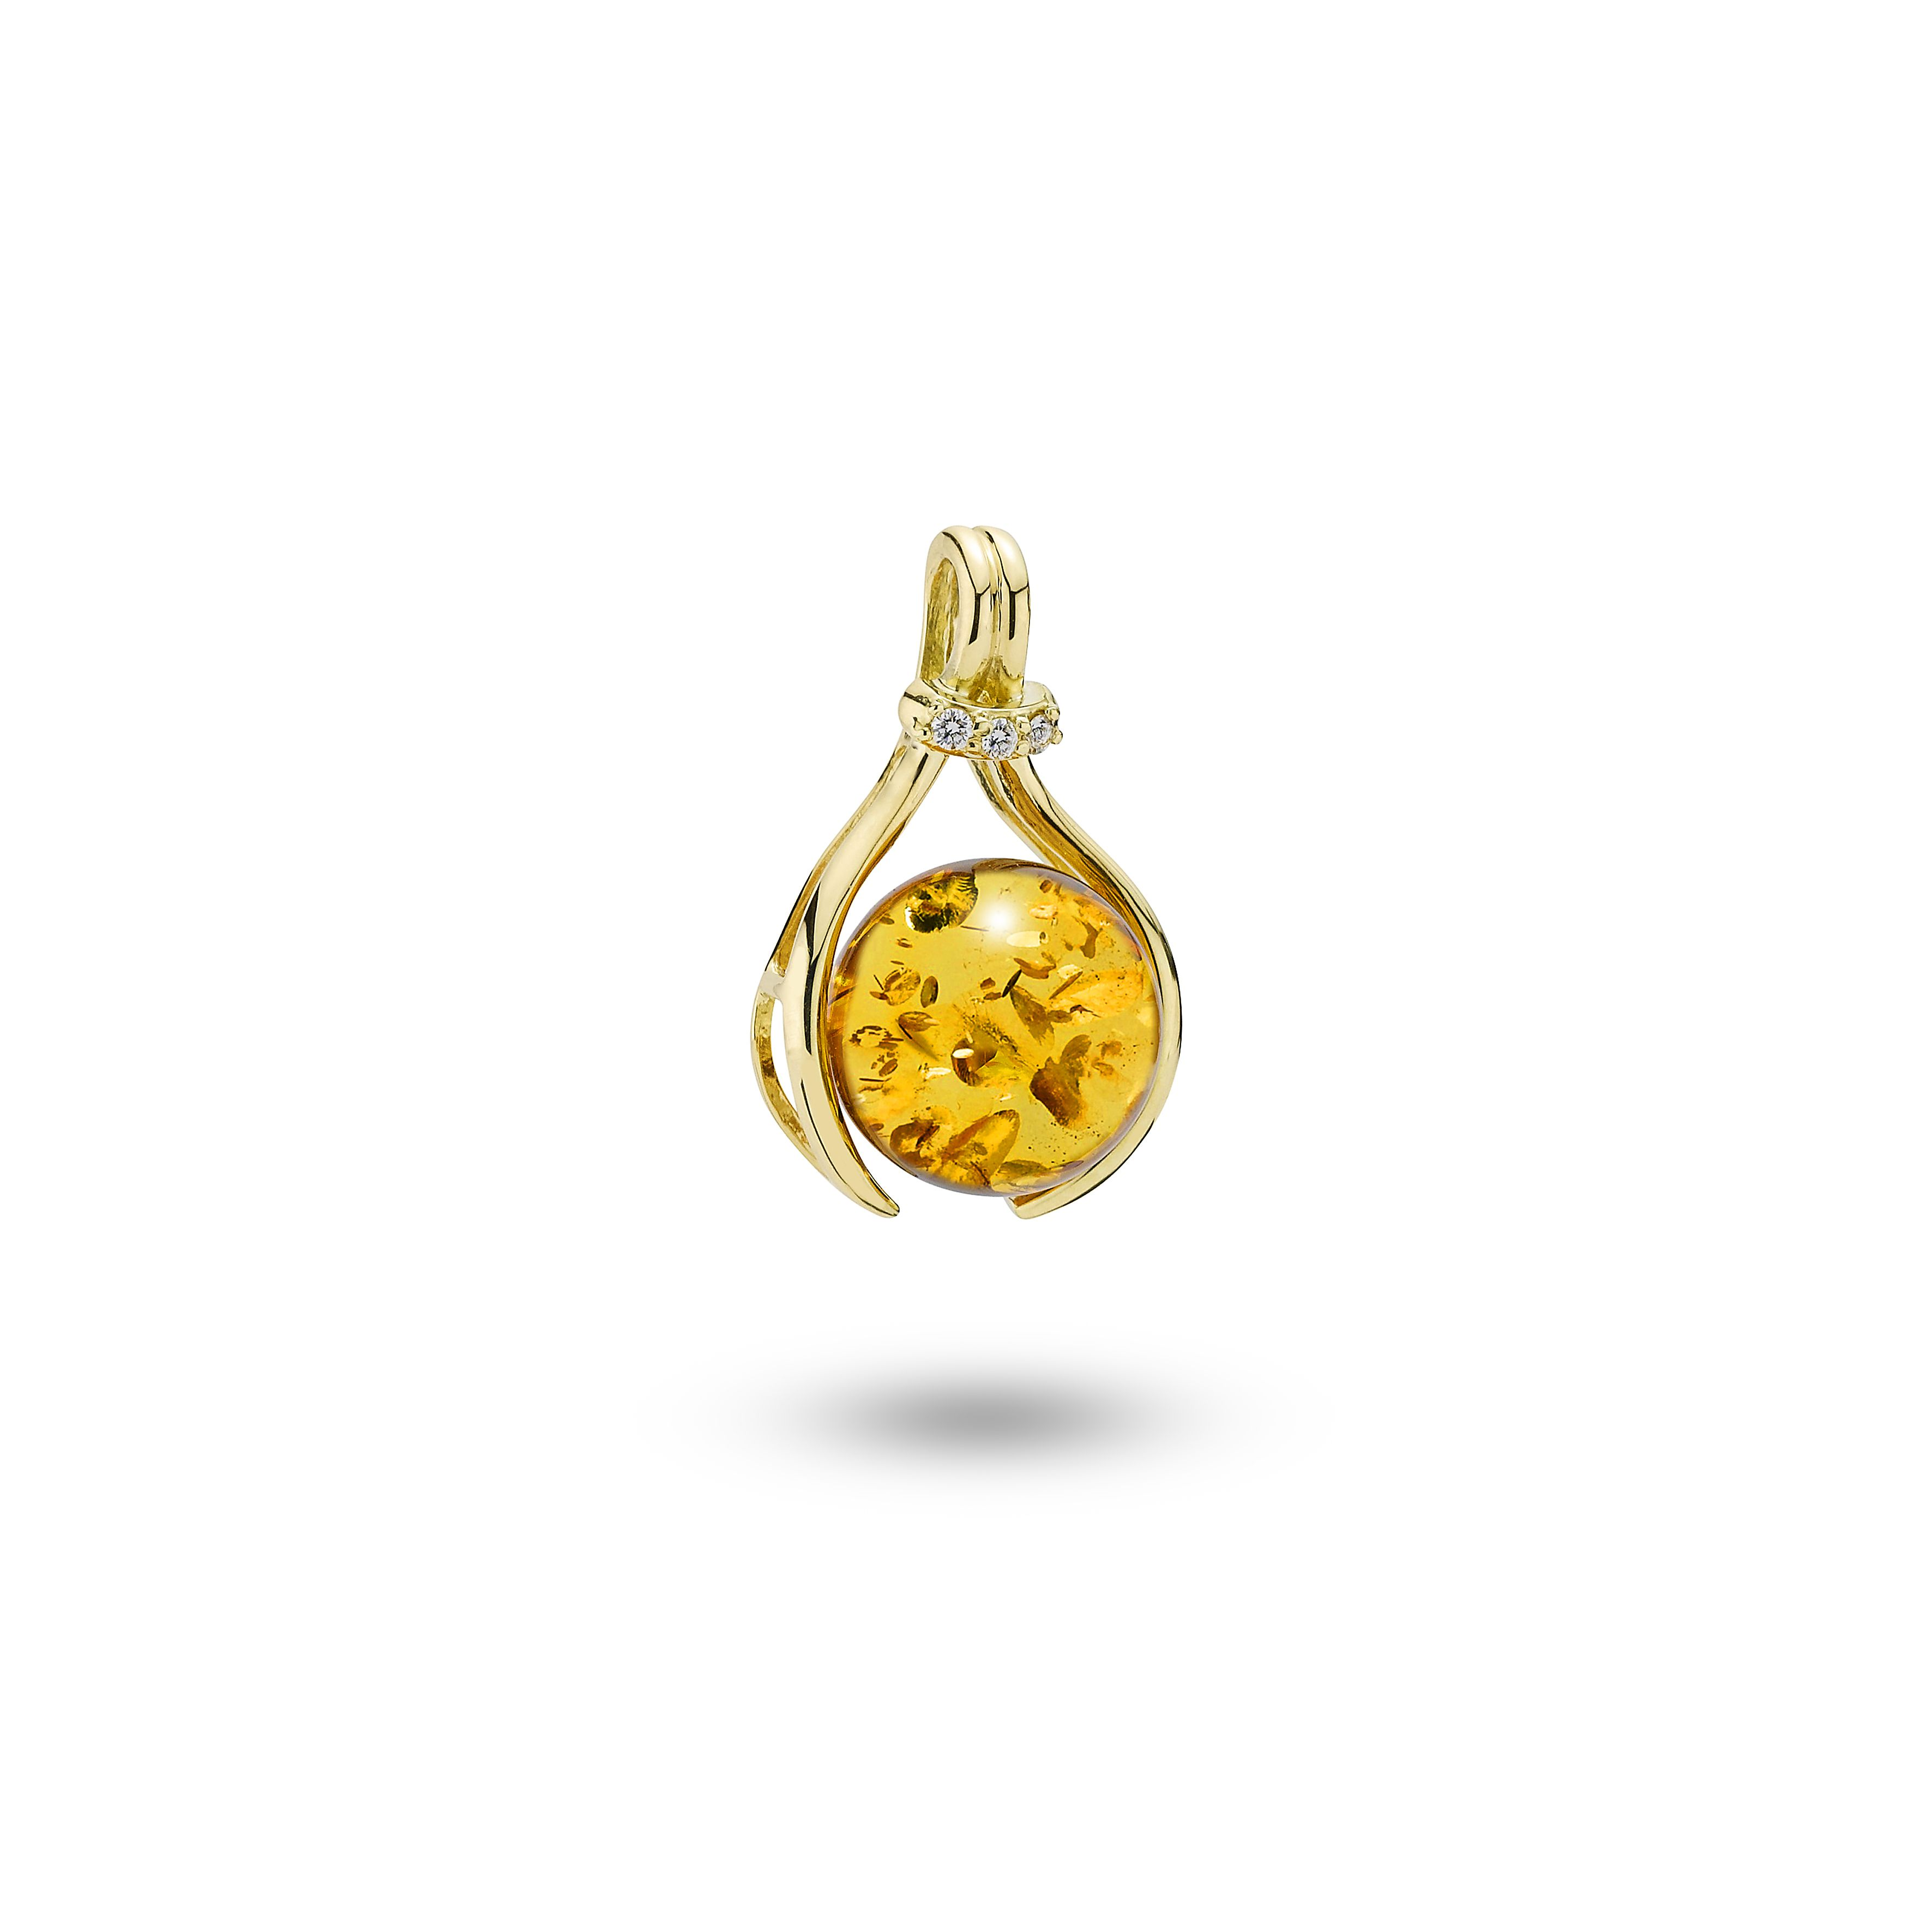 House of Amber - A unique pendant in 18 carat gold, cognac amber, and 0.05 ct diamonds. The pendant is a part of the Sparkling Star Collection.